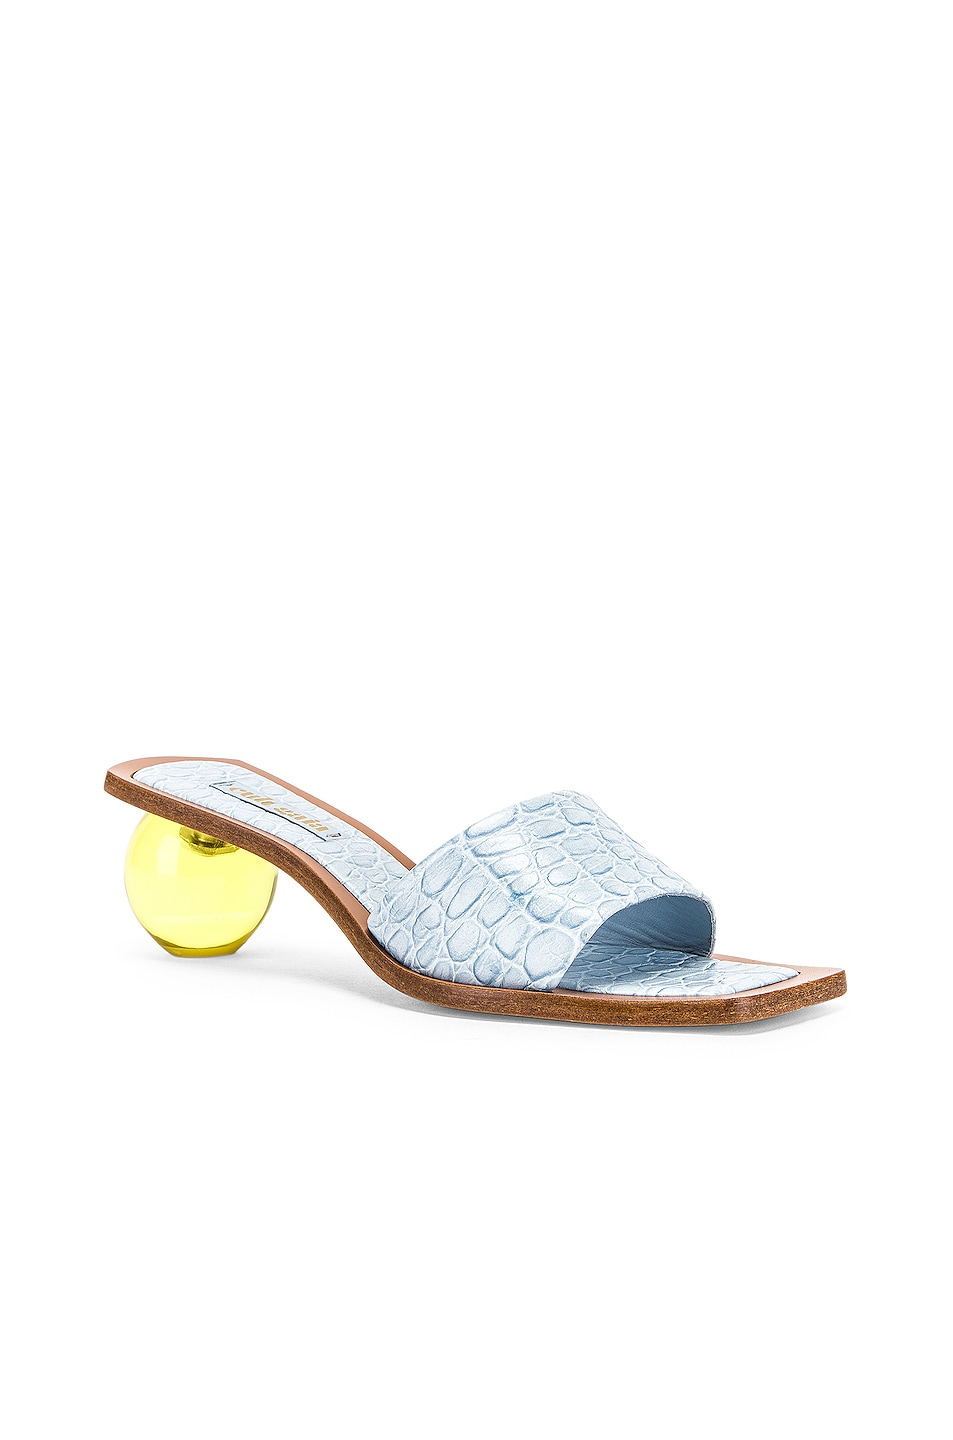 Image 2 of Cult Gaia Tao Sandal in Bluebell